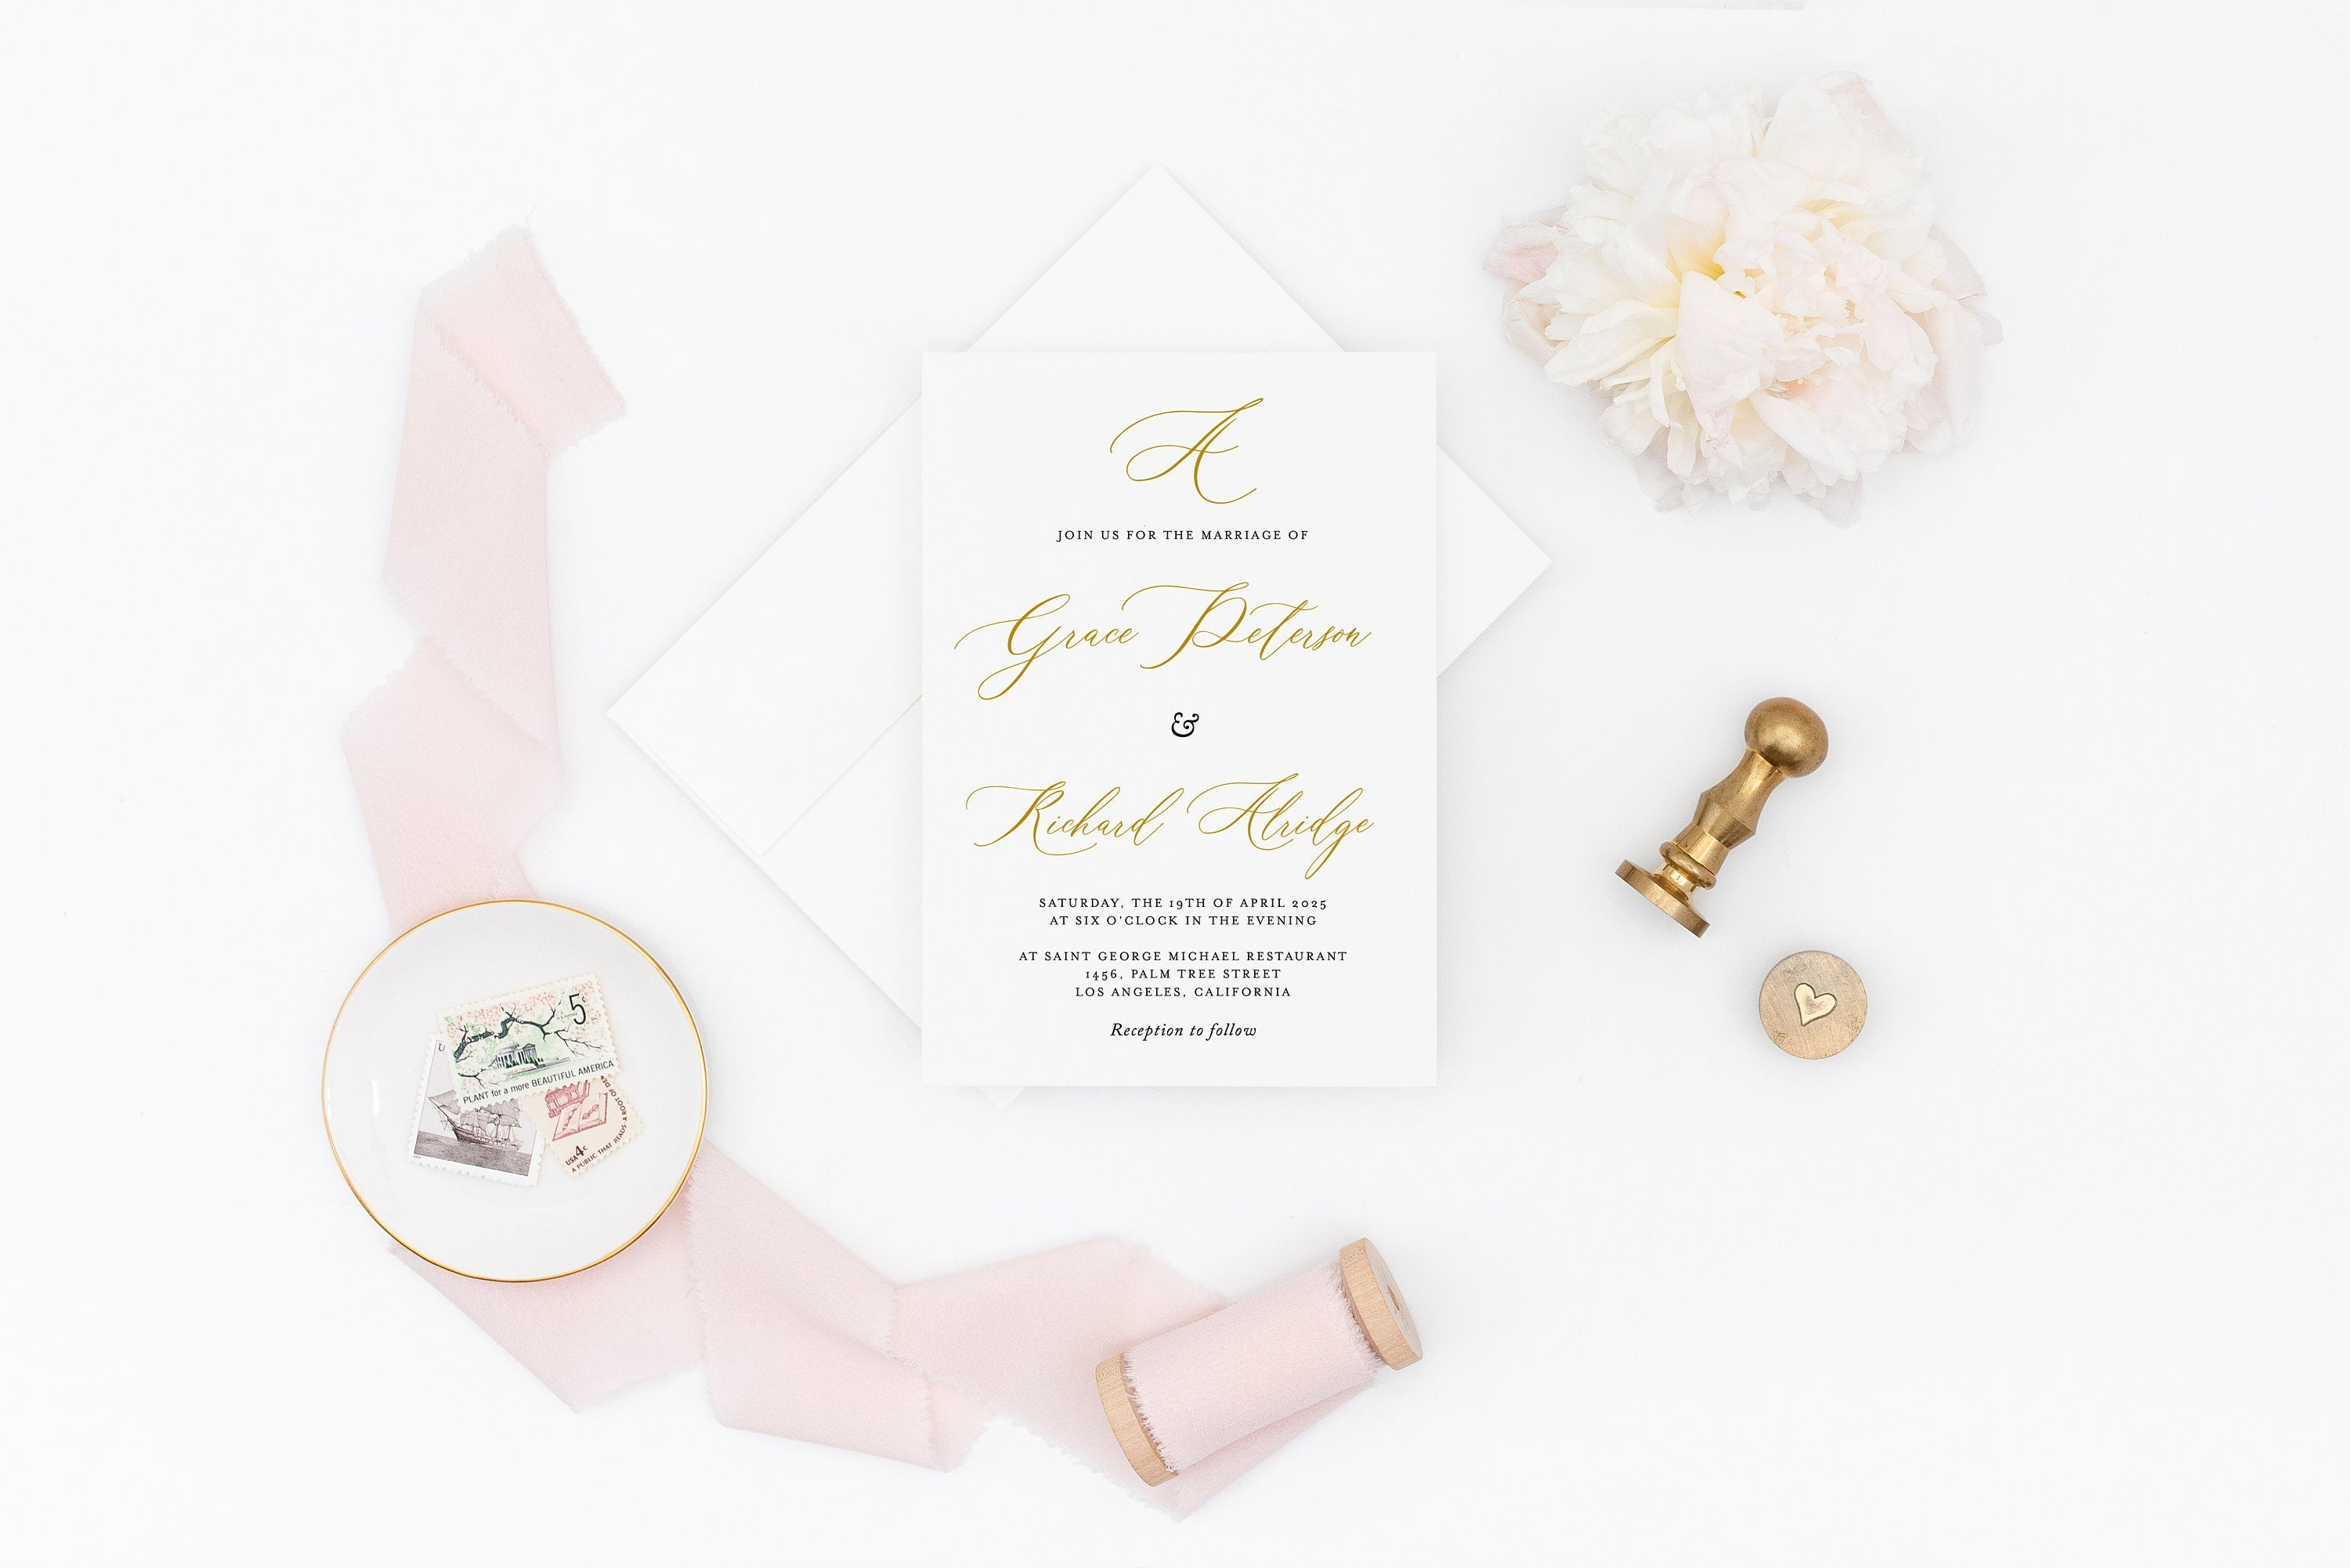 Wedding Invitation Template, Floral Watercolor, Instant Download, Templett, Printable Wedding, Editable - Grace